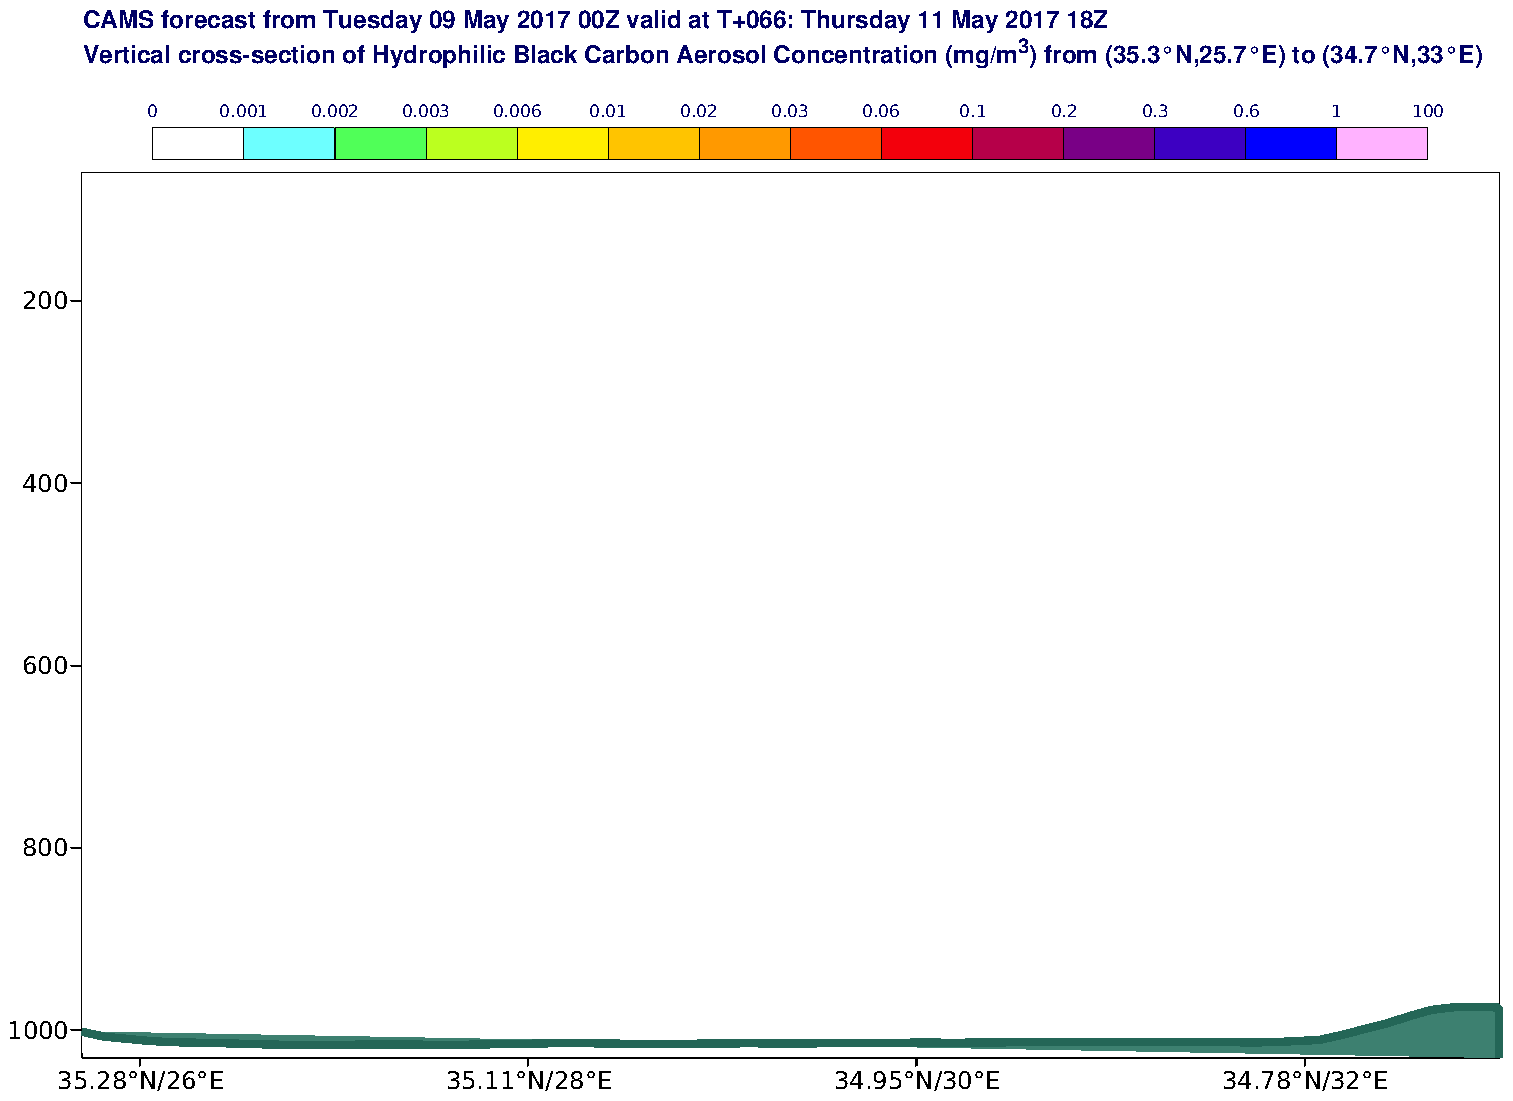 Vertical cross-section of Hydrophilic Black Carbon Aerosol Concentration (mg/m3) valid at T66 - 2017-05-11 18:00